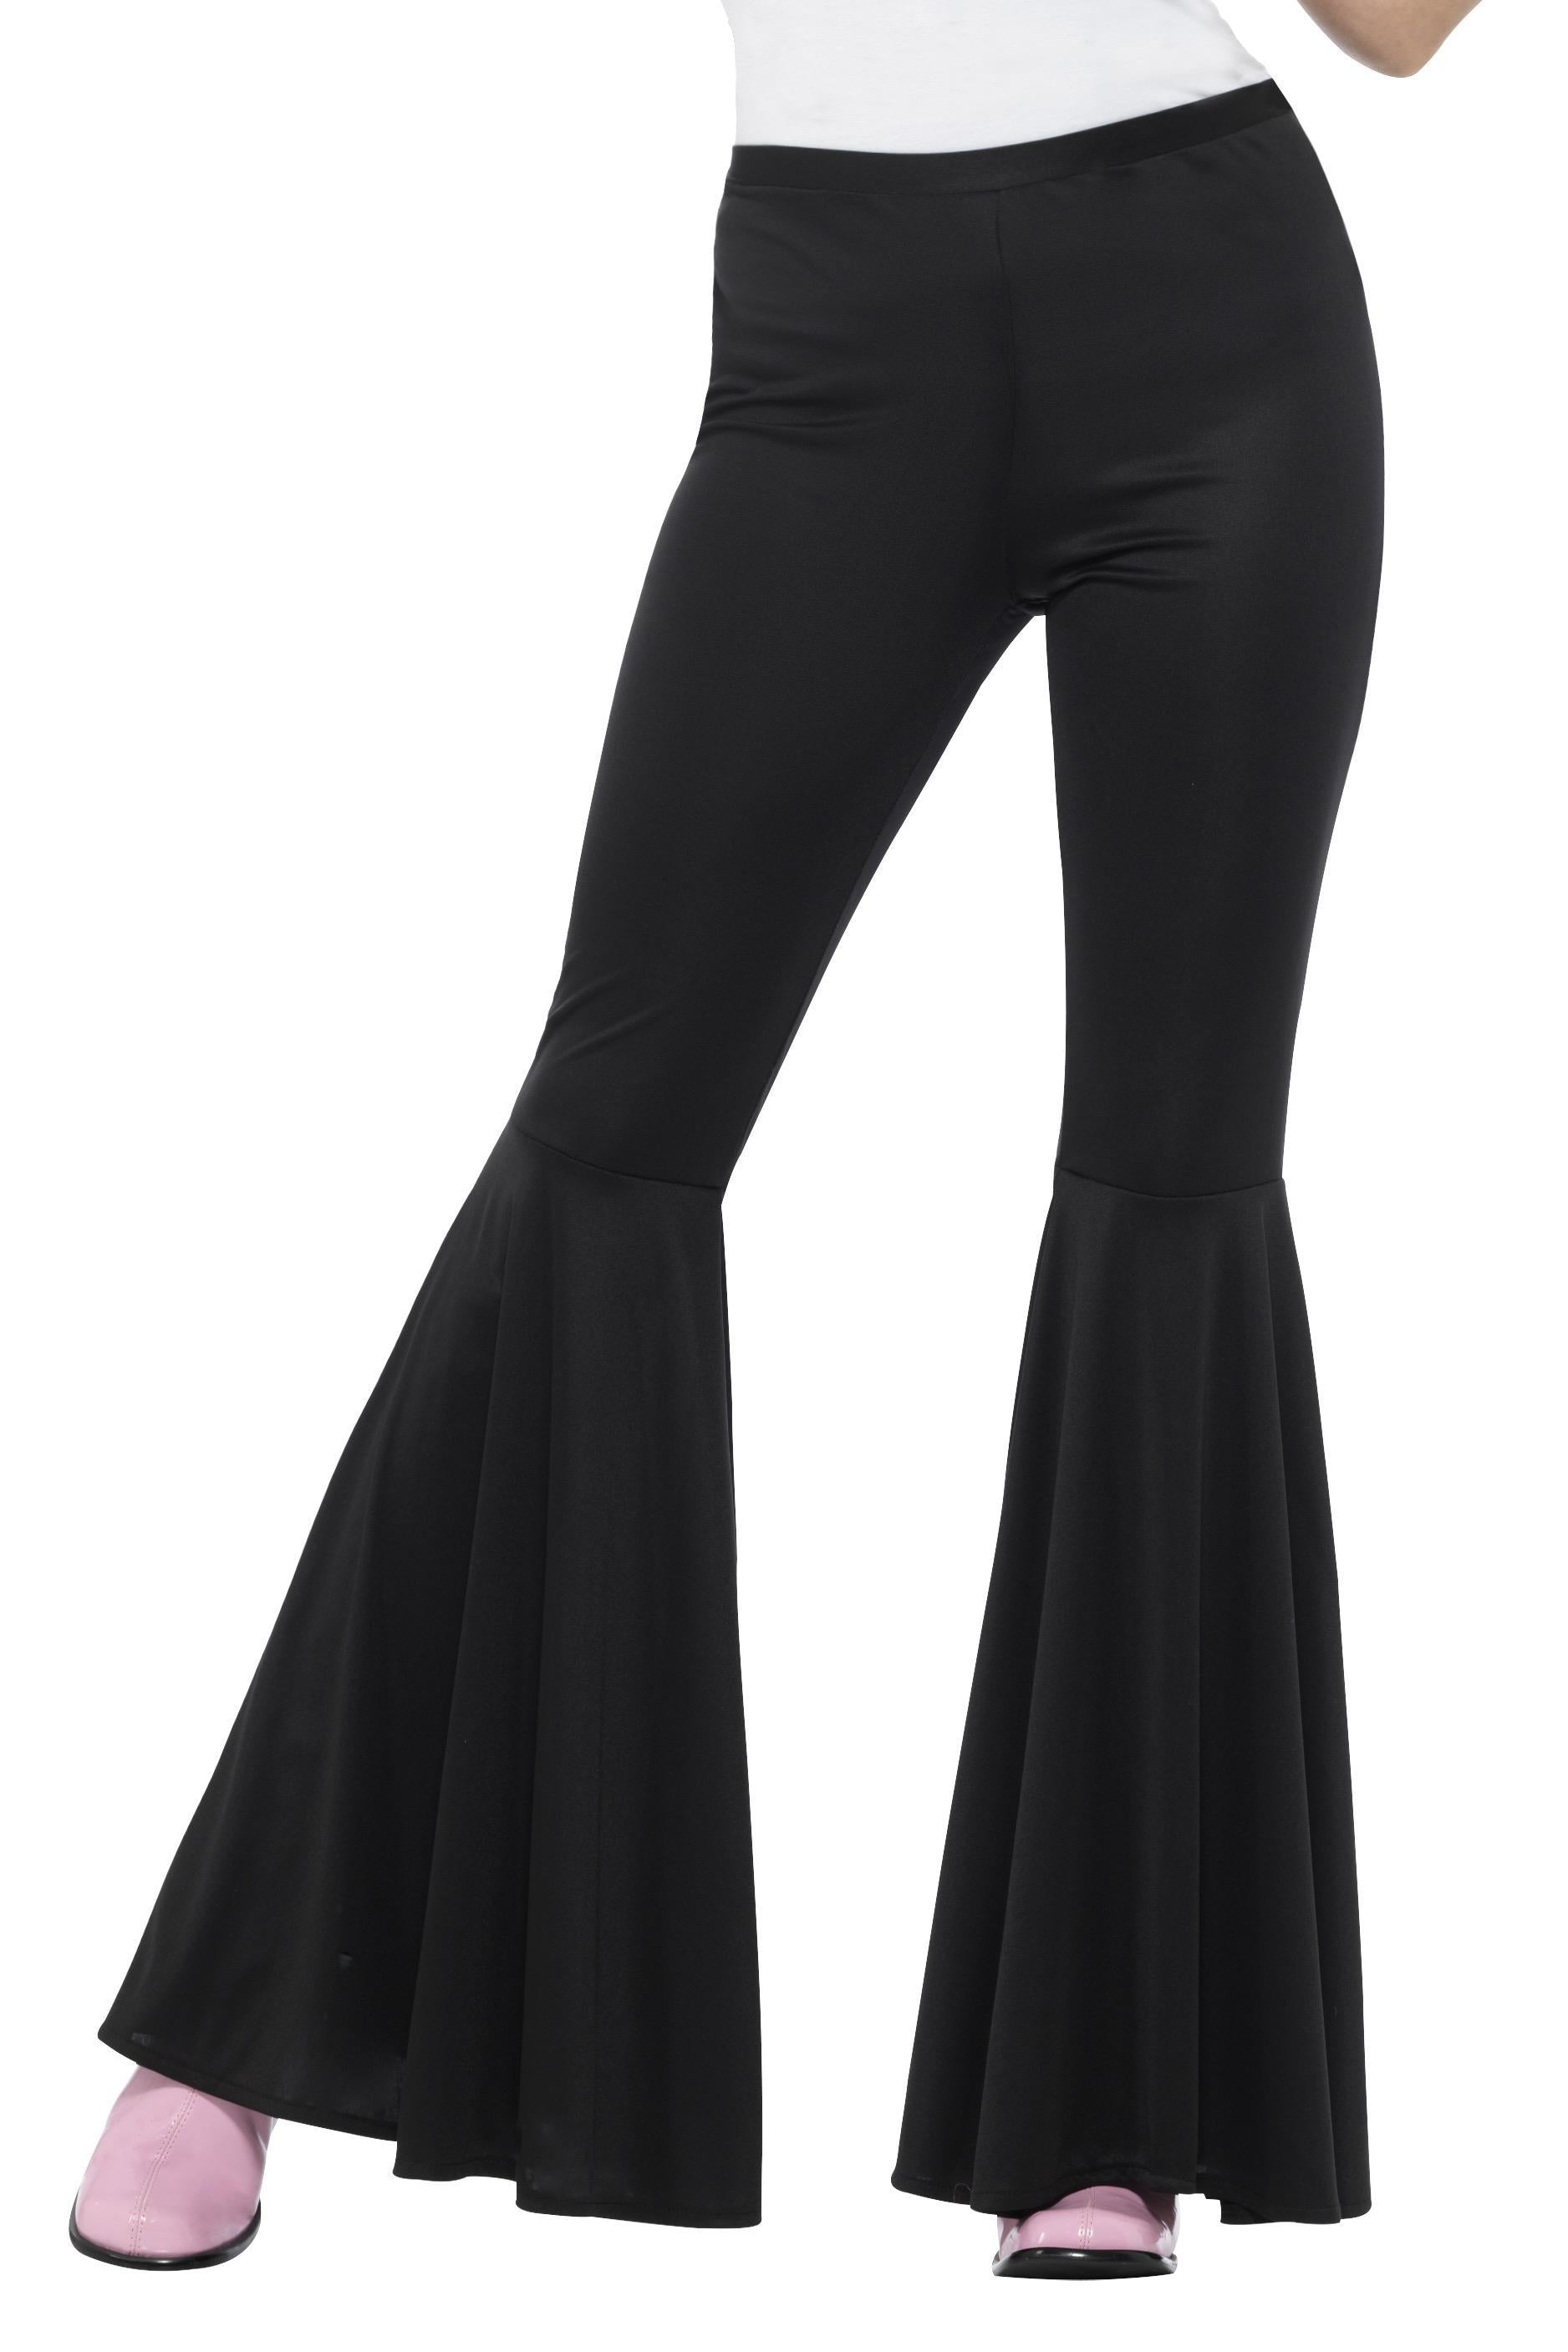 Lady's Black Flared Trousers - PartyFeverLtd